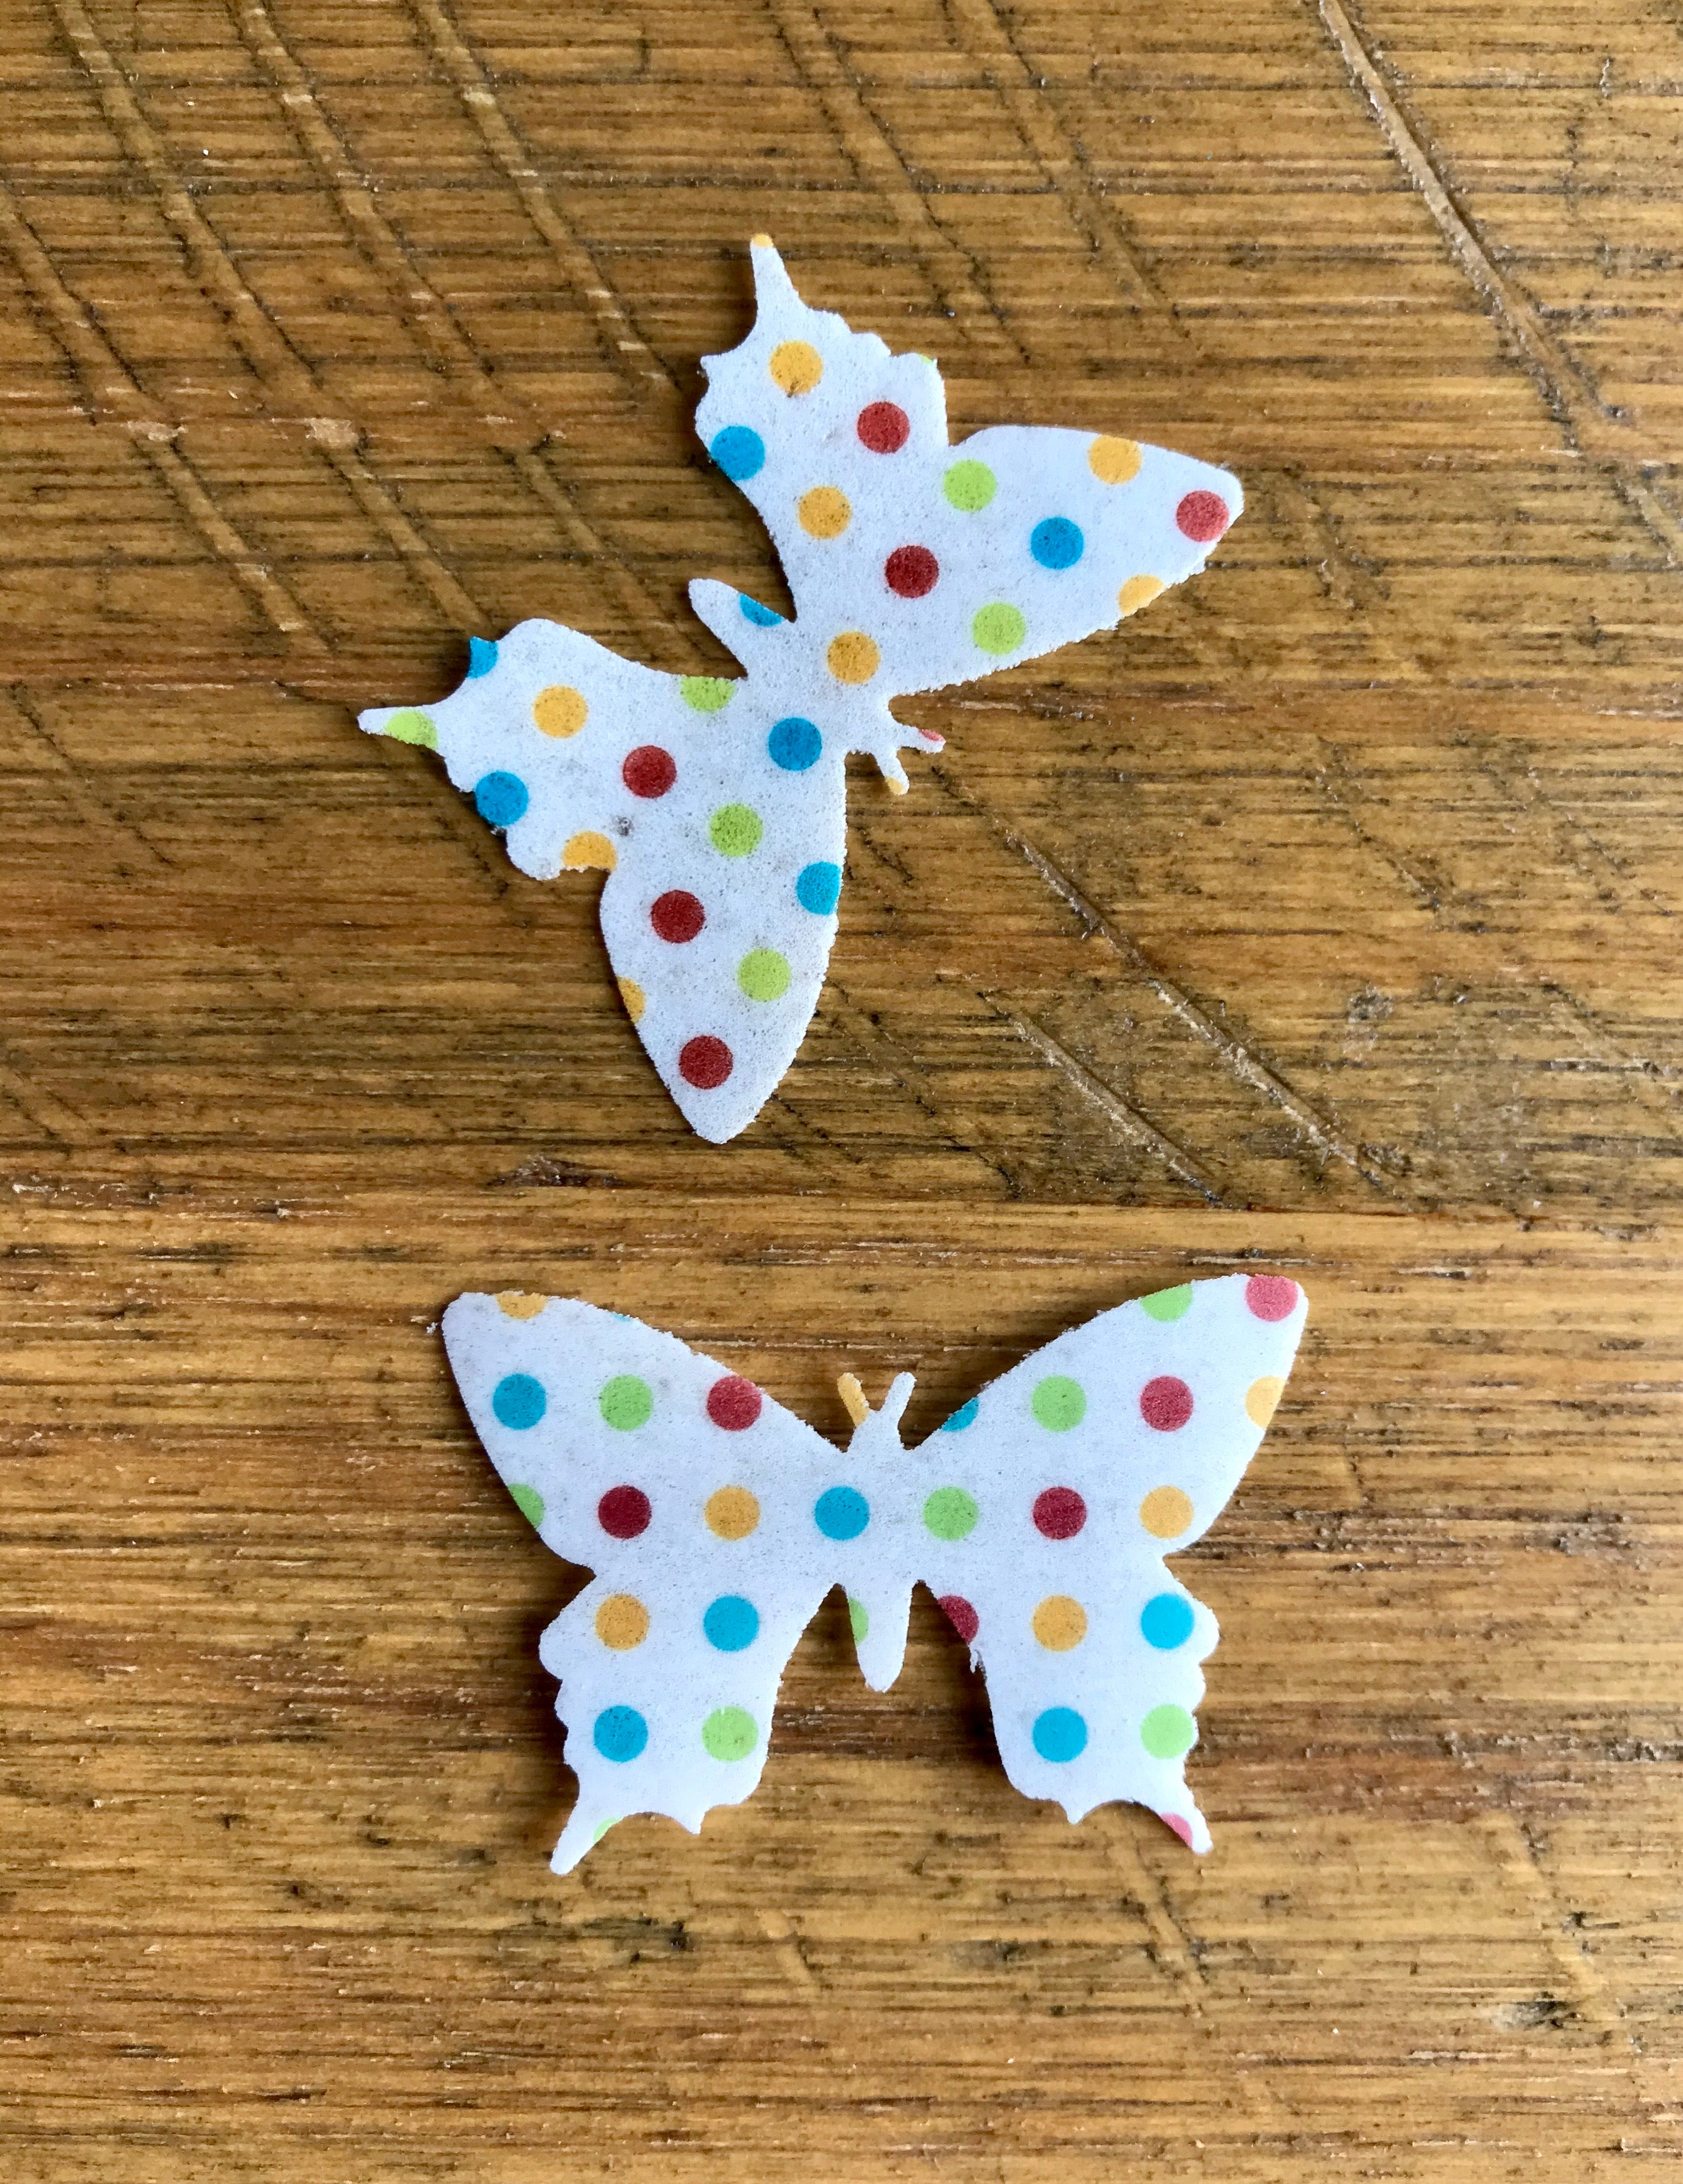 edible wafer spotty butterflies